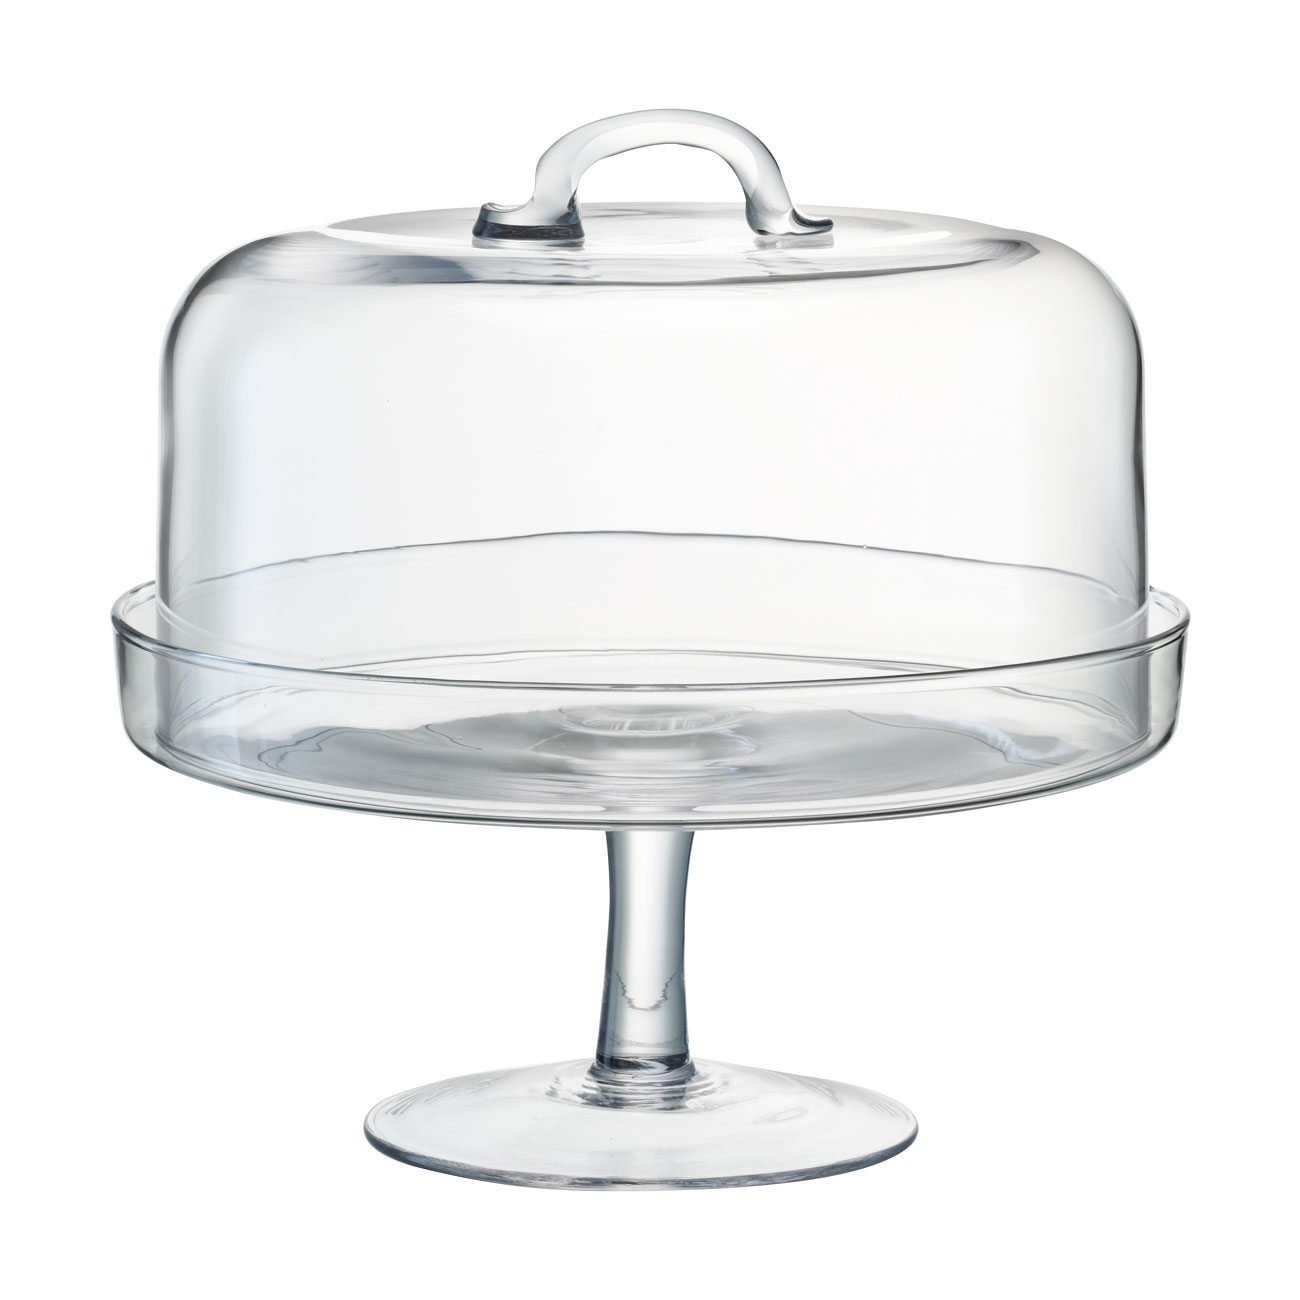 Lsa Glass Cake Stand With Dome